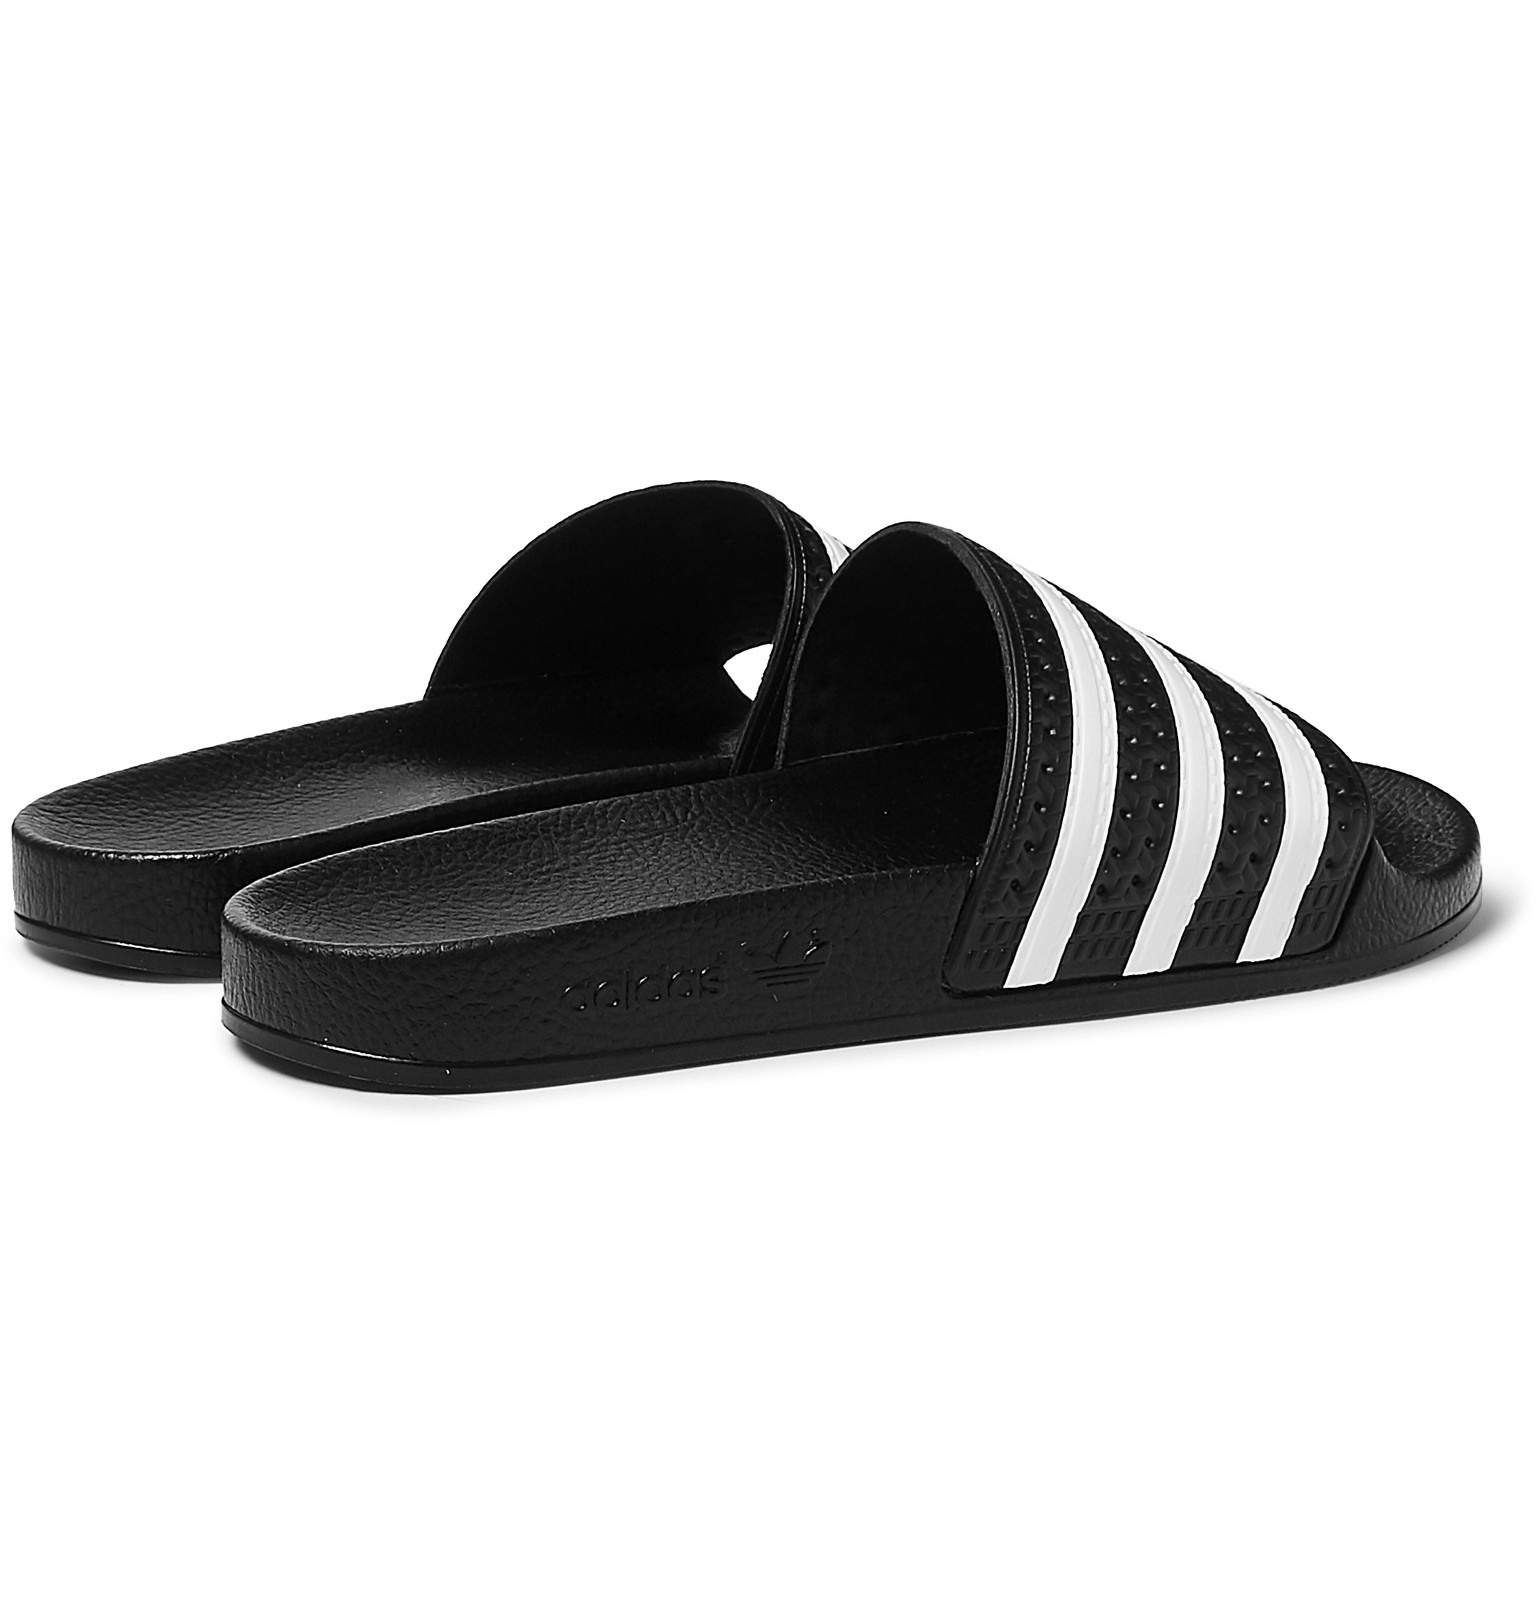 b0d821cd6 adidas Originals - Adilette Textured-Rubber Slides